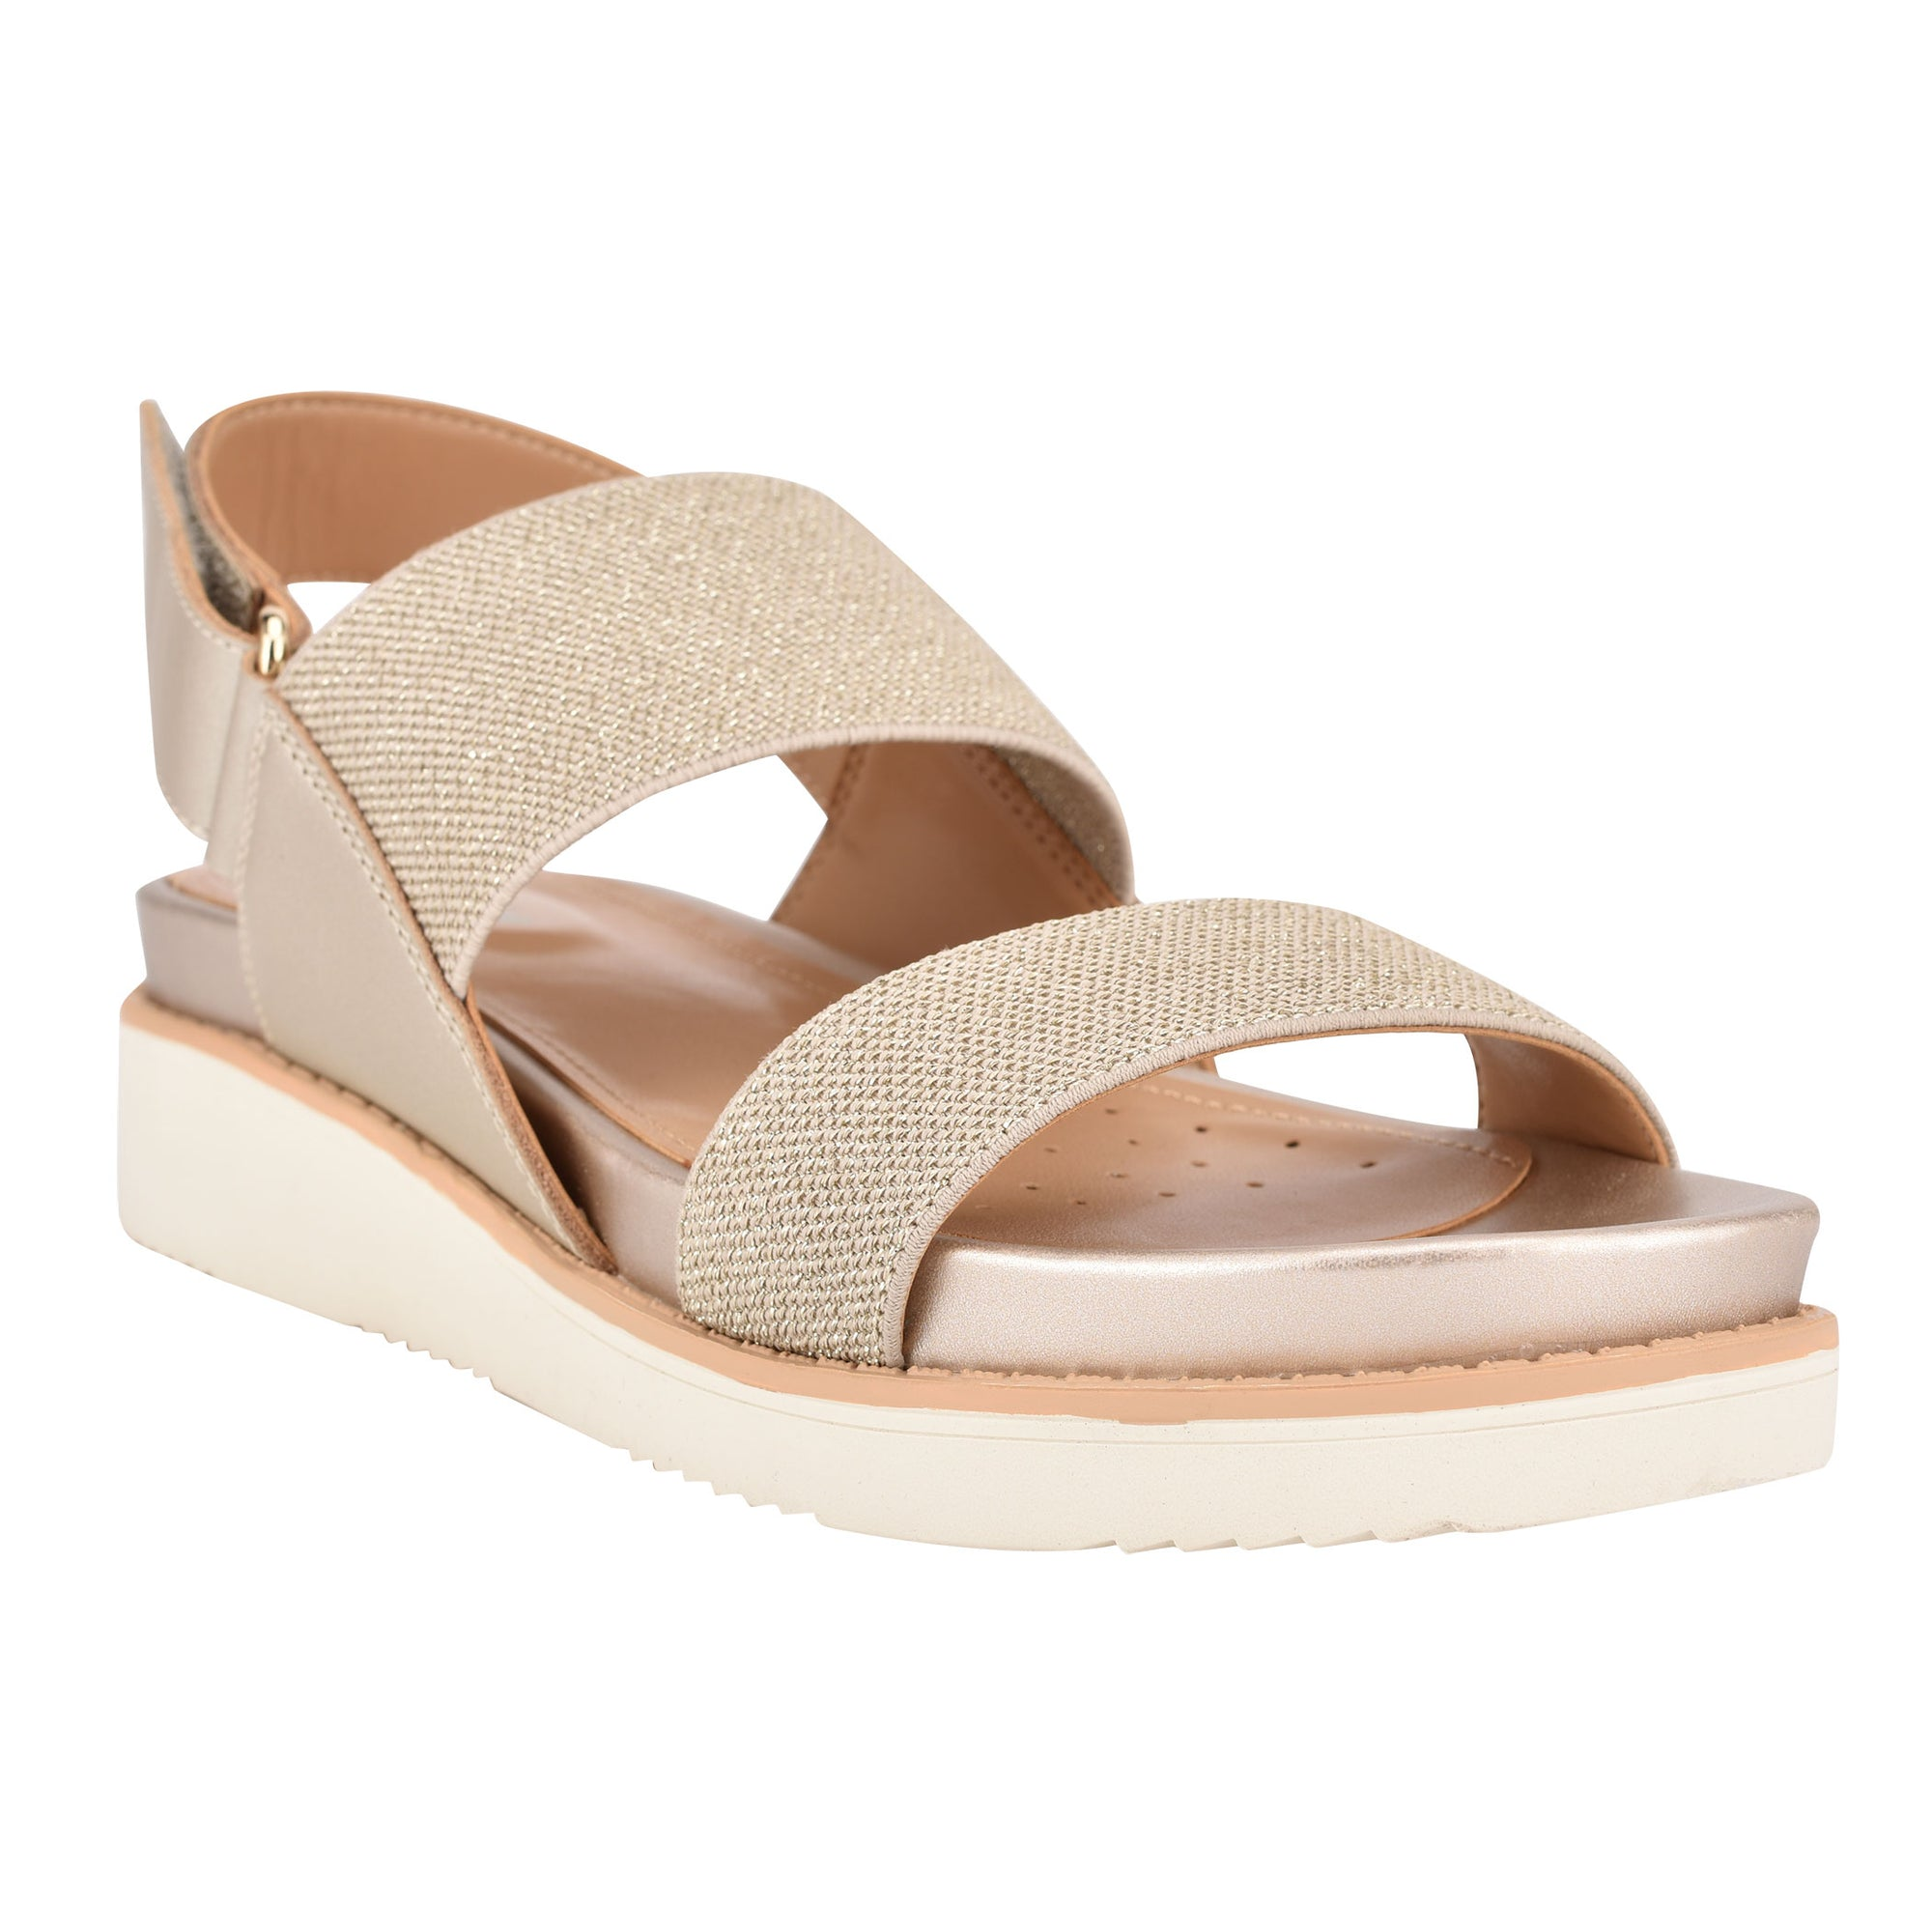 Martha Stewart Winnie Wedge Sandals